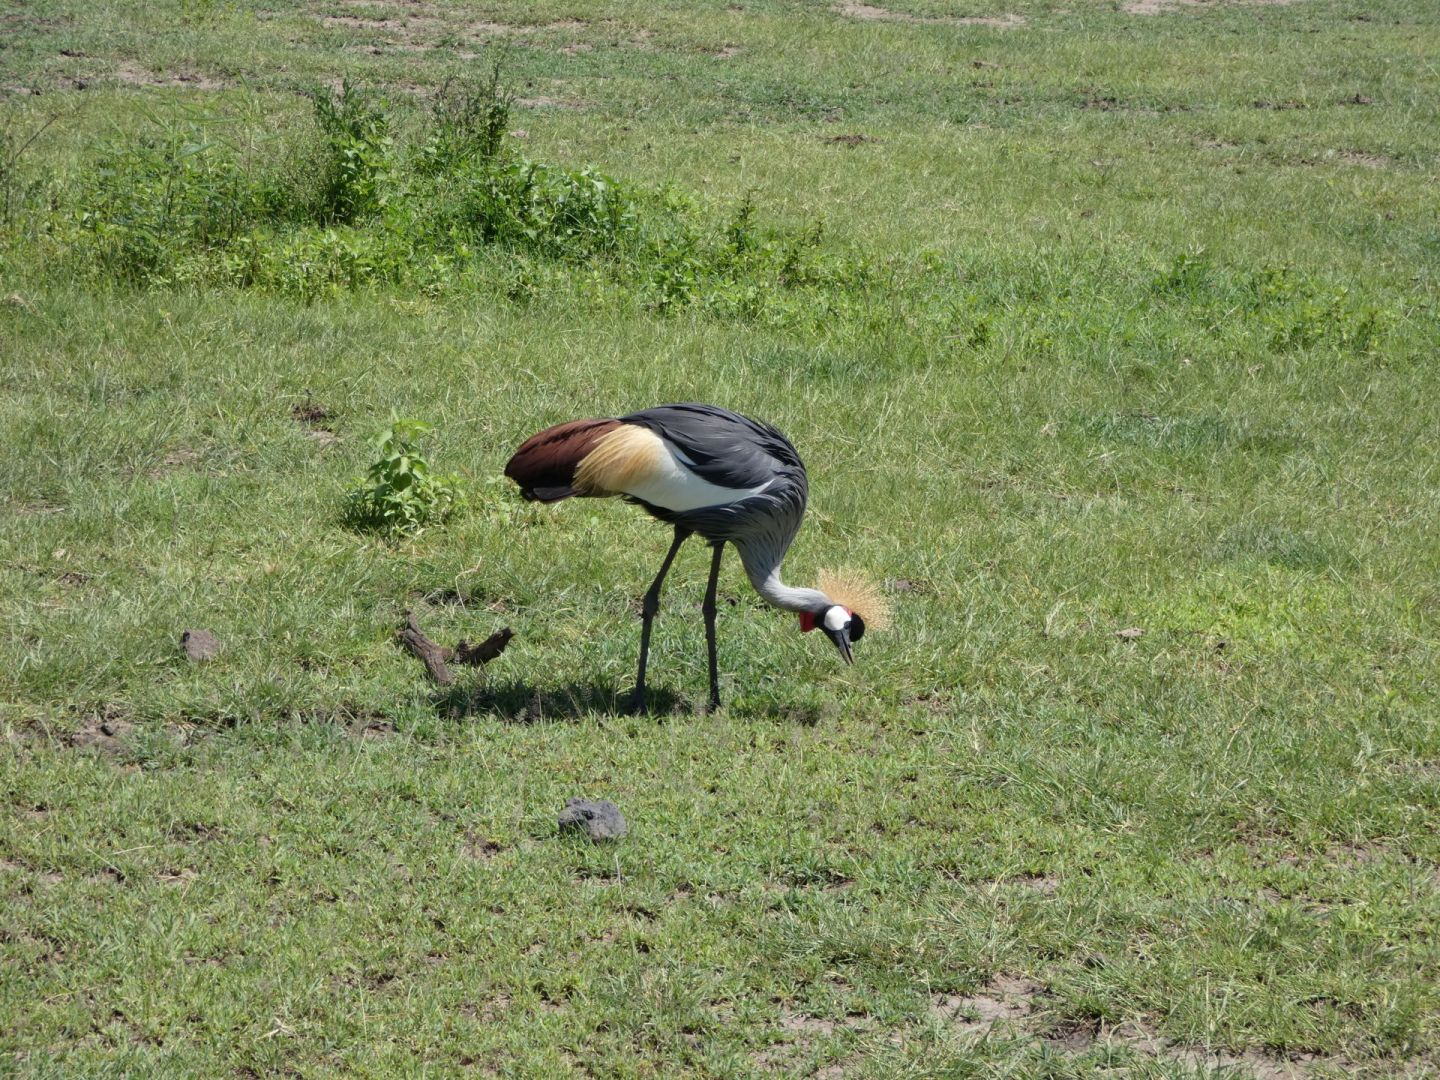 The grey crowned crane, also called the crested crane, is Uganda's national bird and a common sight in Tanzania's Lake Manyara National Park.